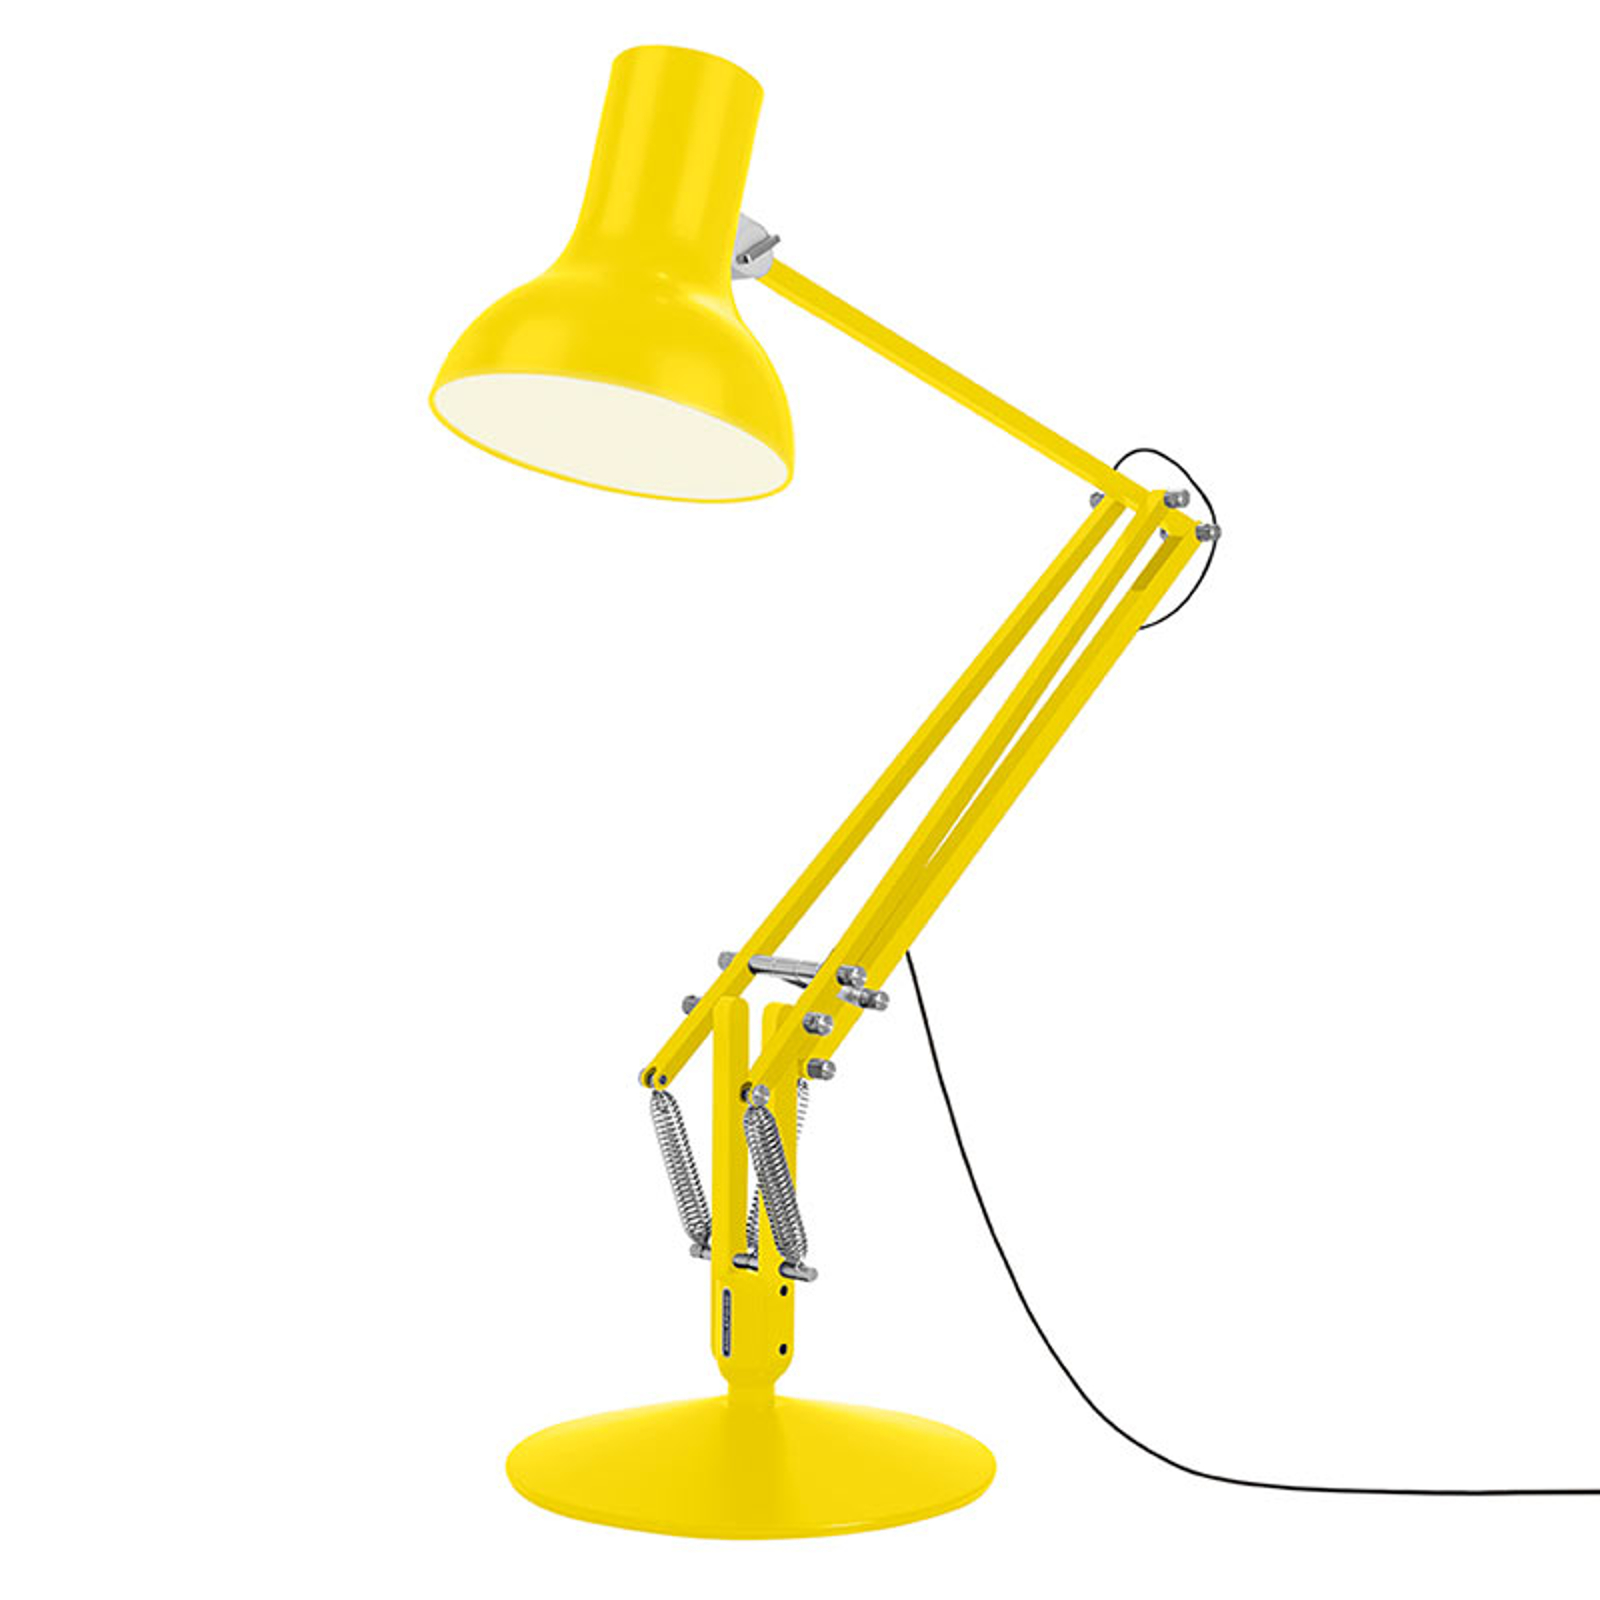 Anglepoise Type 75 Giant lampadaire jaune